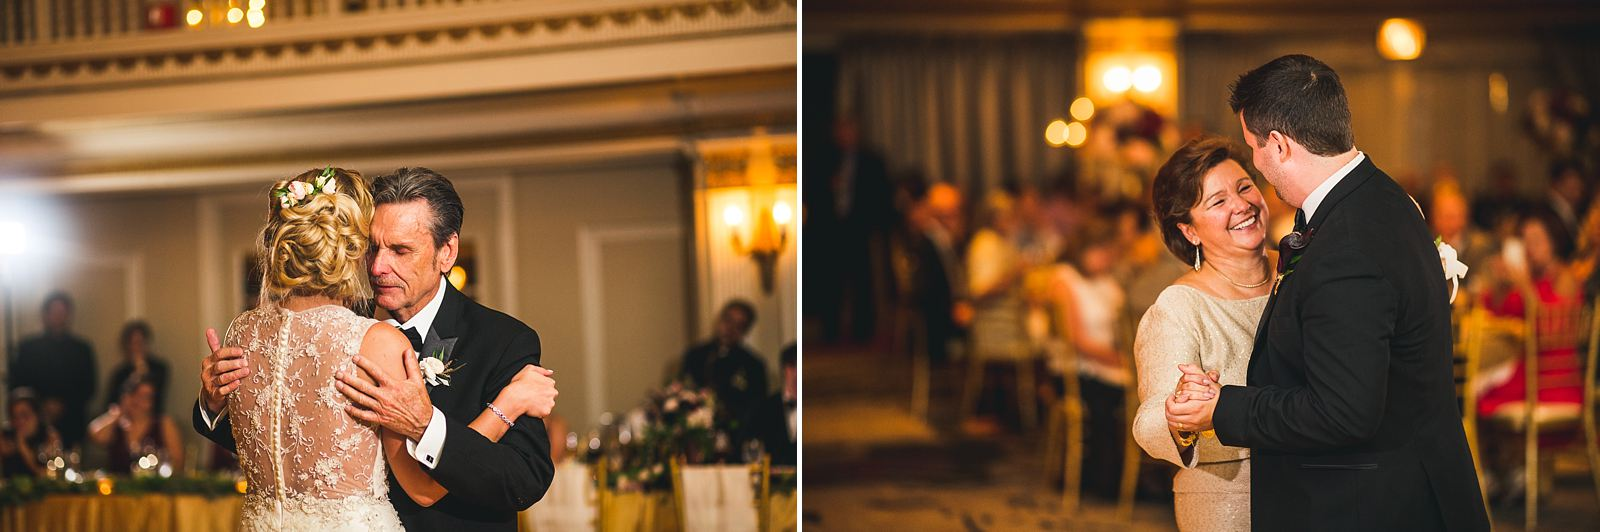 59 first dances with parents photos - Chicago Drake Hotel Wedding // Corie + Jordan